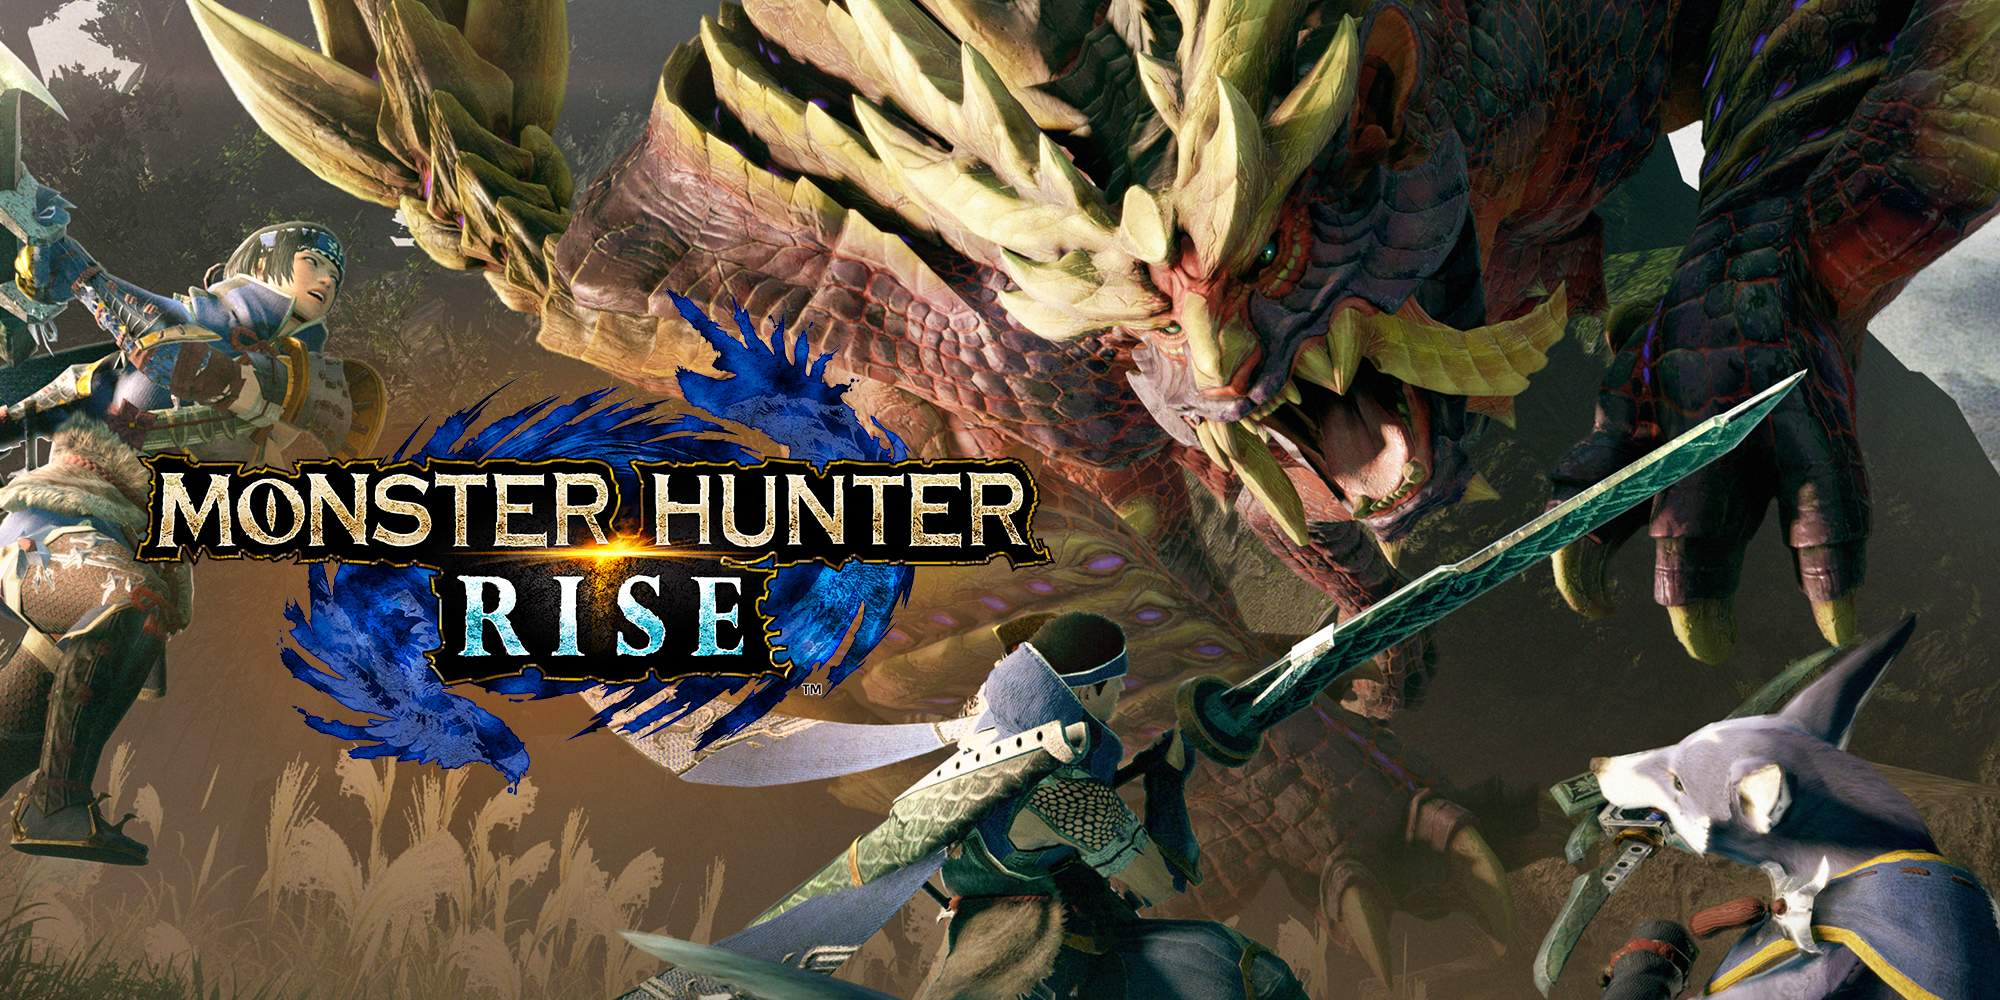 MONSTER HUNTER RISE DISPONIBILE ORA SU NINTENDO SWITCH